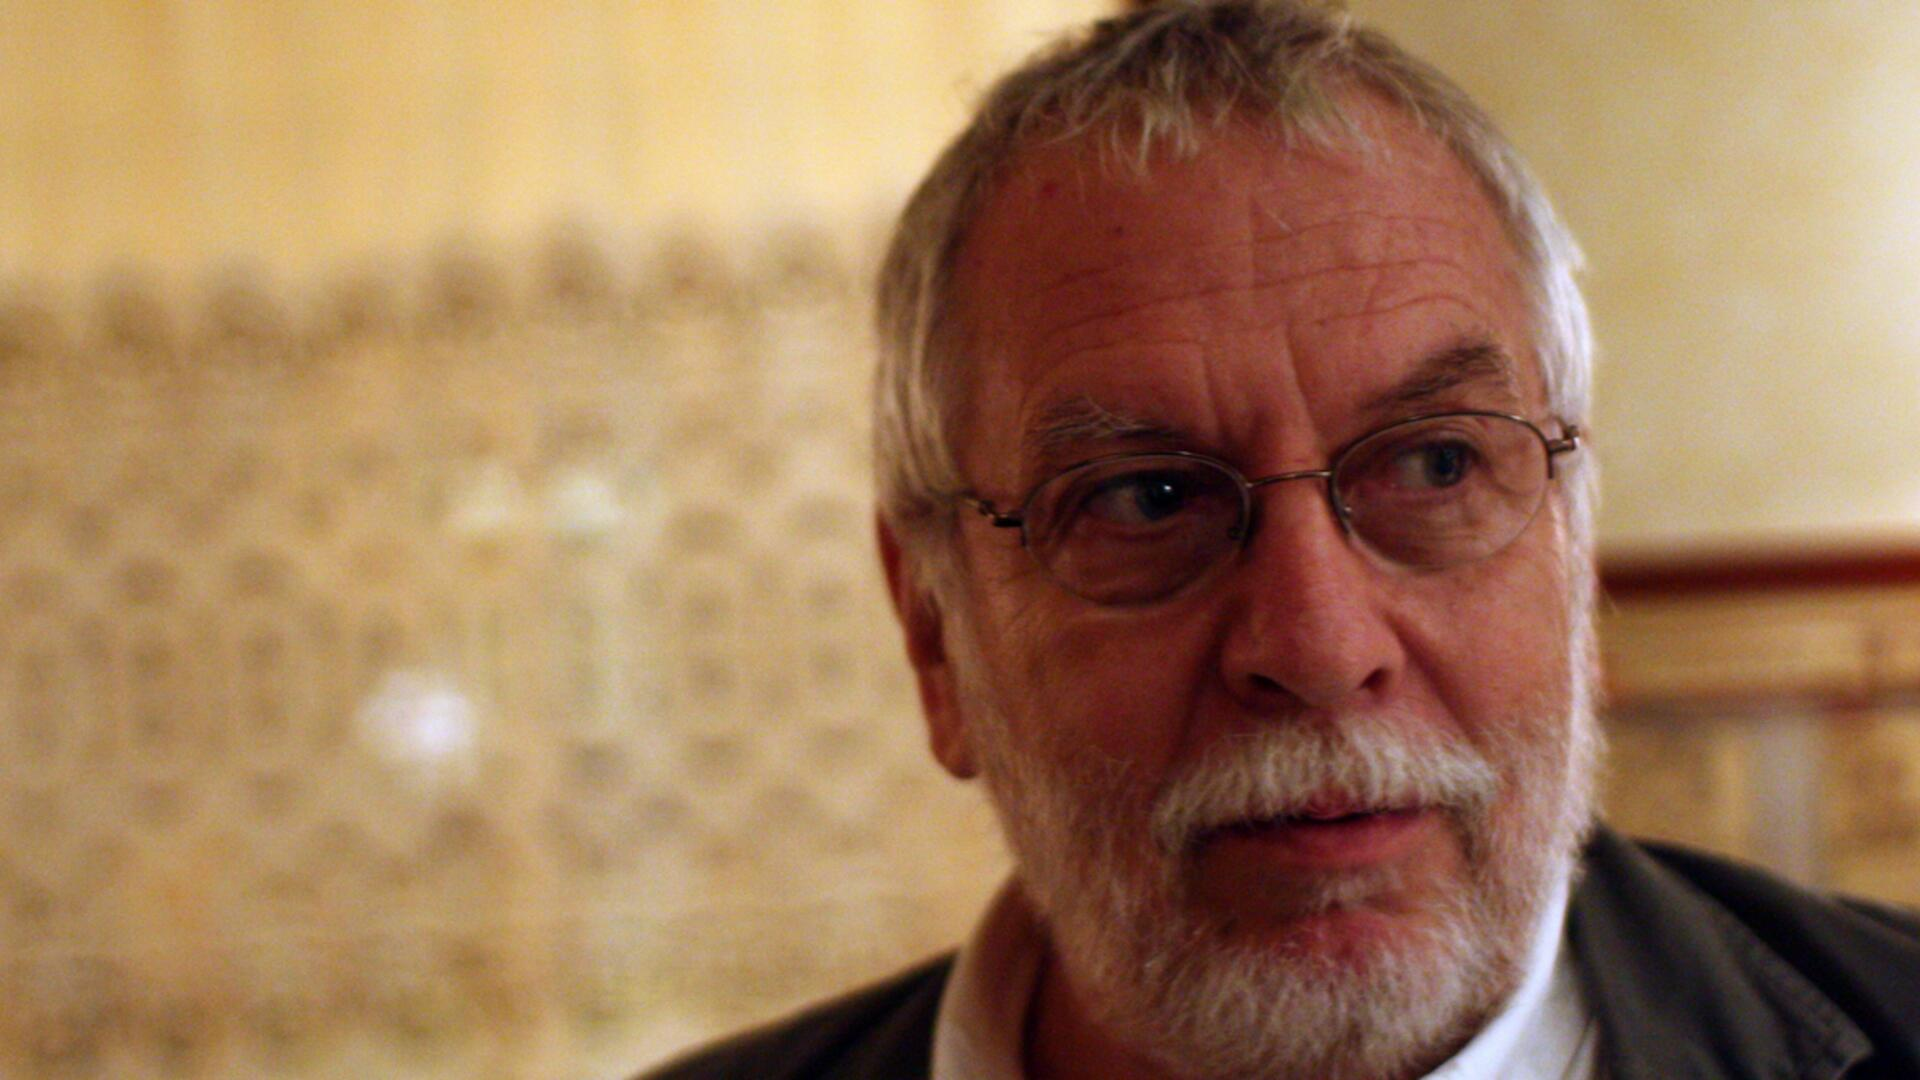 GDC Announces It Will Not Award Atari Founder Nolan Bushnell After Controversy [Update]